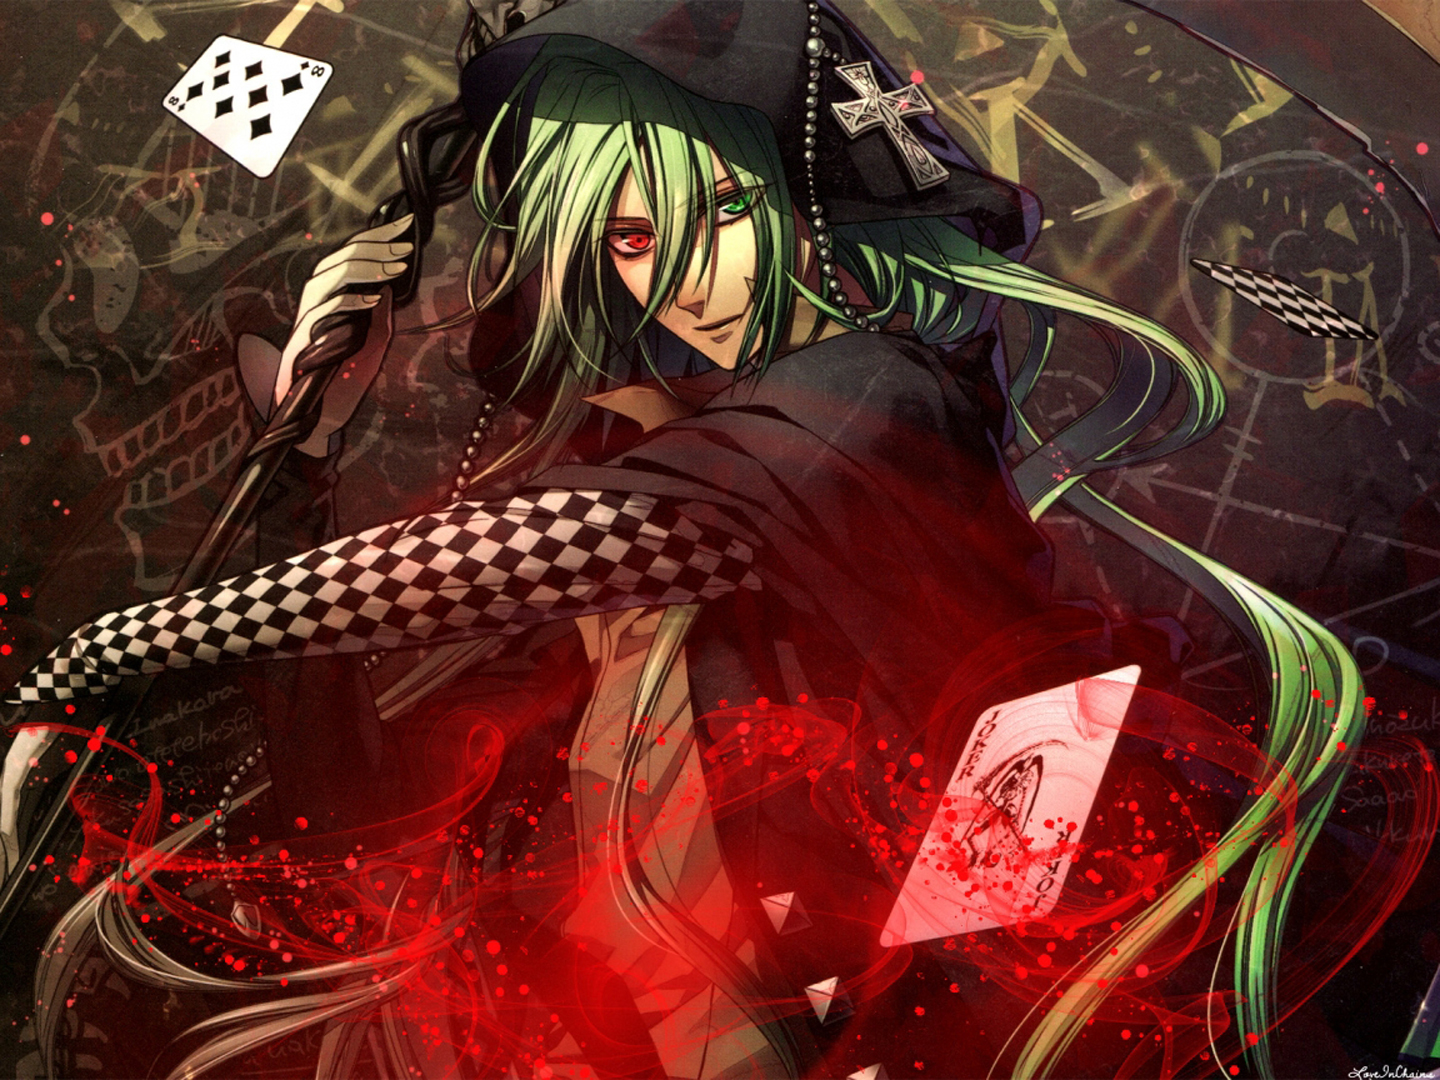 [AK] The Casino Master Part 1 [D] %5Banimefullfights.com%5D+fires_of_my_soul_manga_poker_green_hair_anime-hd-wallpaper-708963